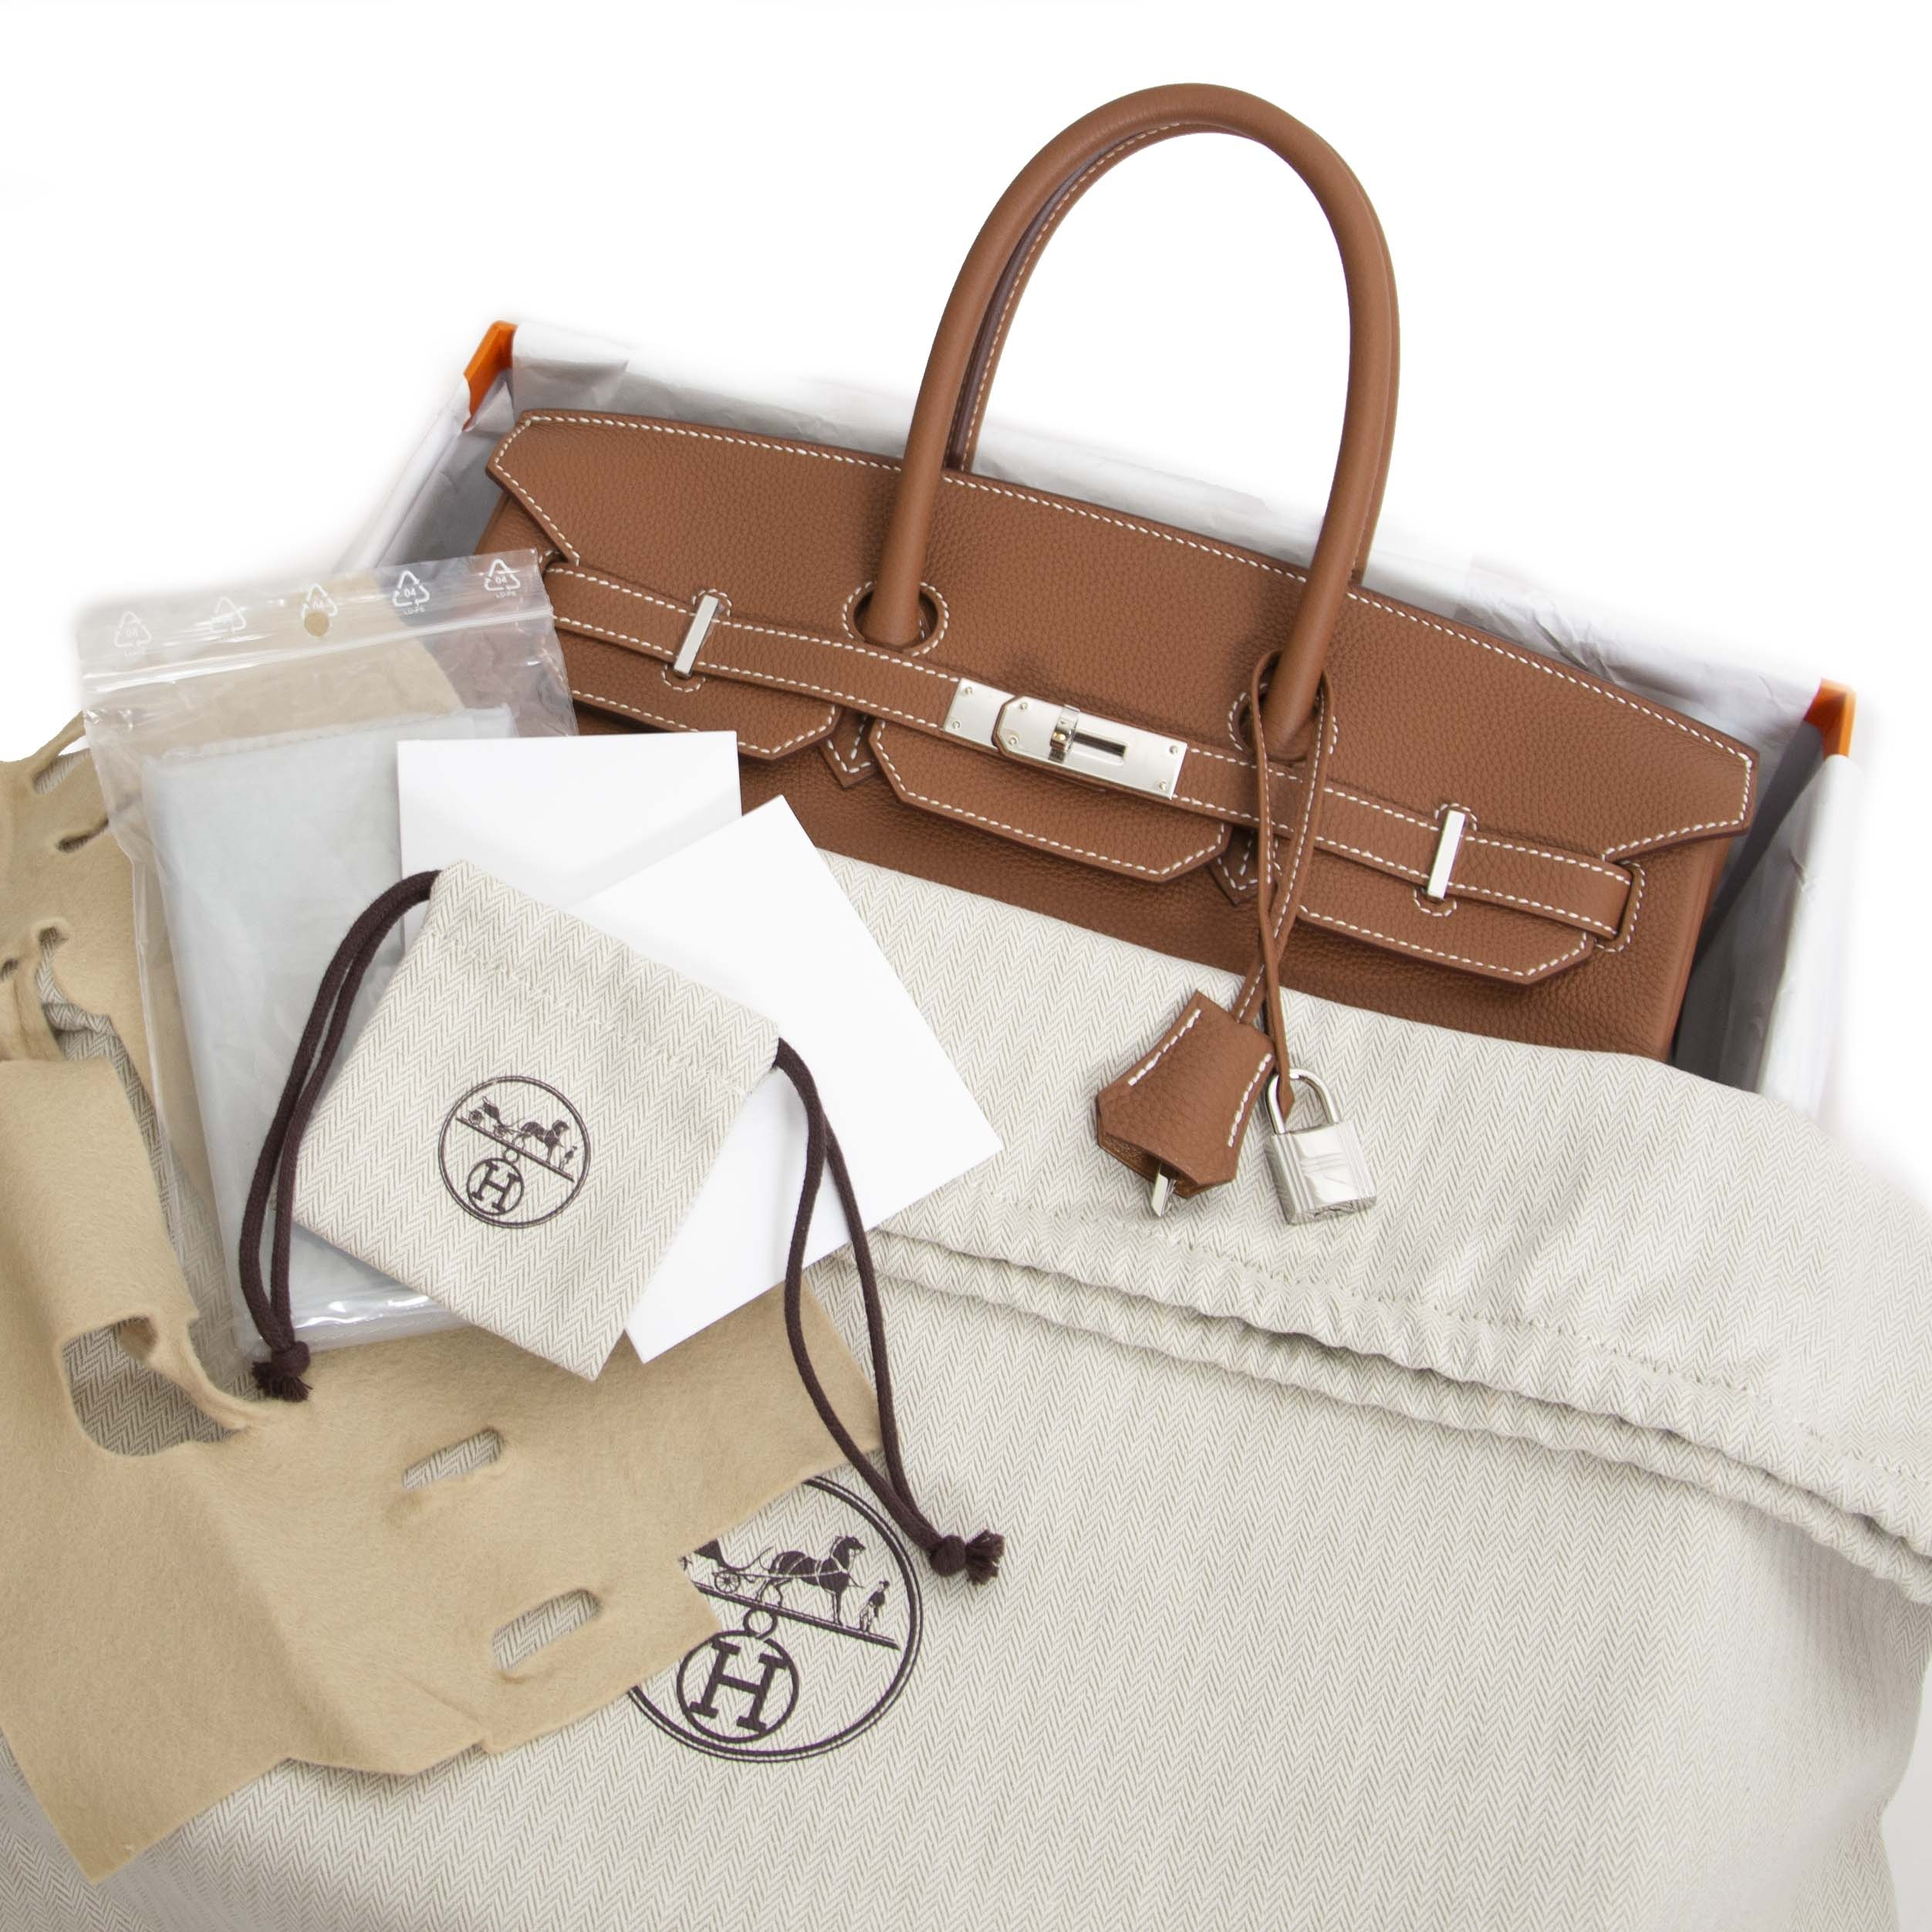 56c739b4984 ... Buy 100% authentic Hermès Birkin 35 Gold Togo PHW for the best price at  Labellov